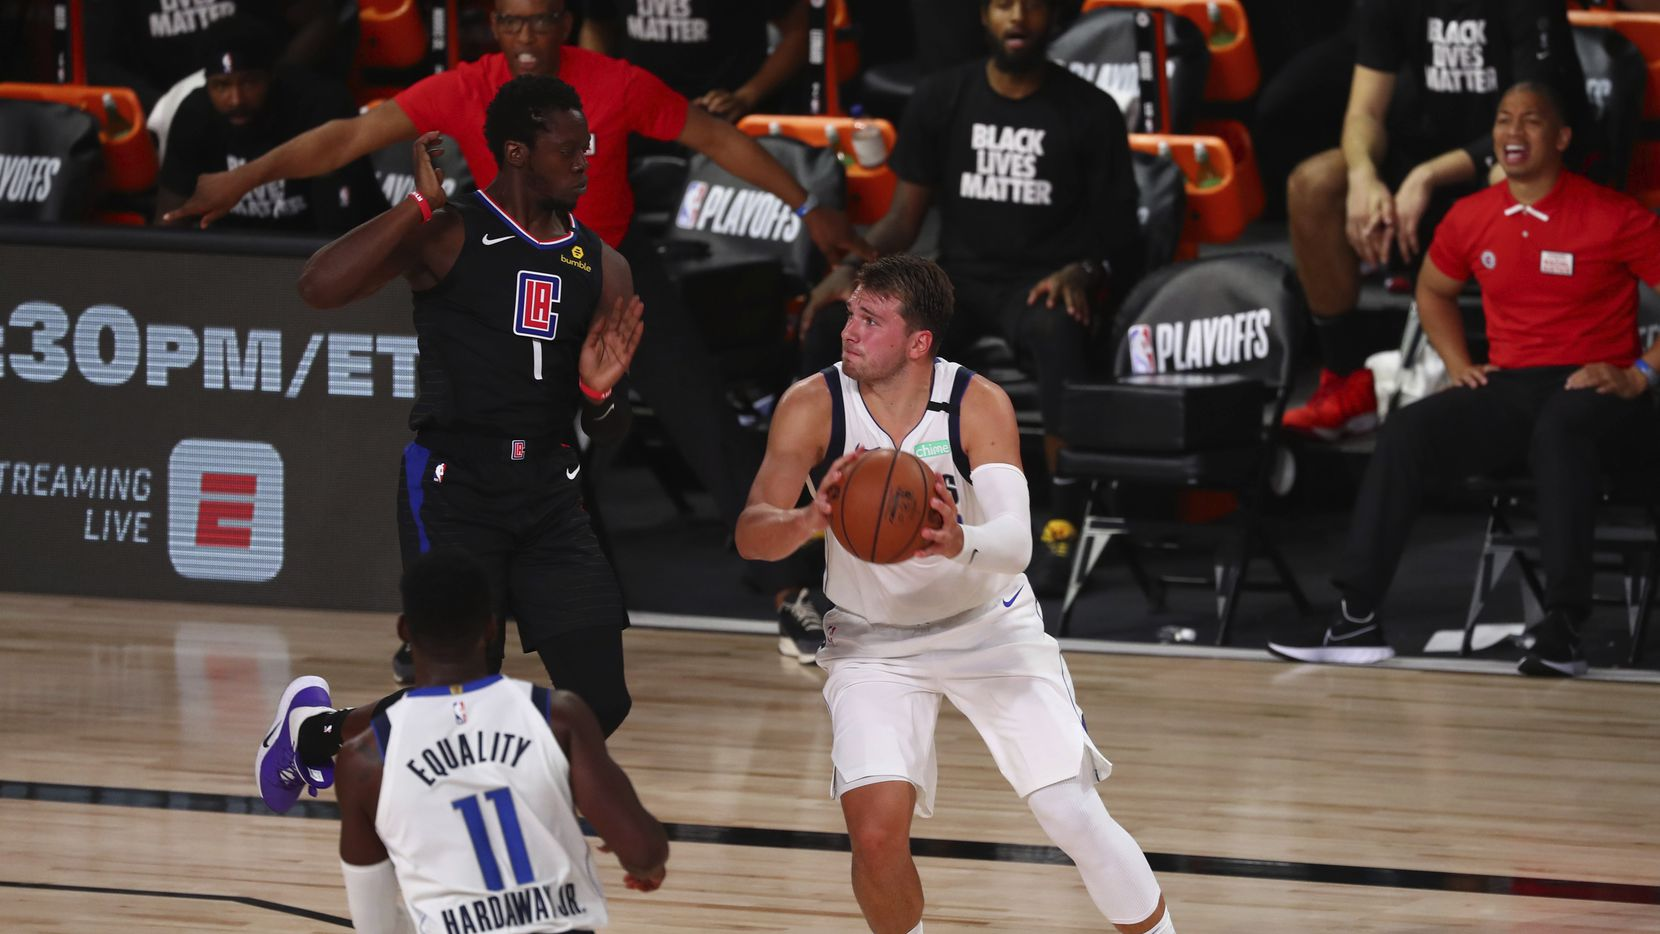 Los Angeles Clippers' guard Reggie Jackson (1) fouls Dallas Mavericks guard Luka Doncic (77) in the second half  of Game 1 of an NBA basketball first-round playoff series, Monday, Aug. 17, 2020, in Lake Buena Vista, Fla. (Kim Klement/Pool Photo via AP)